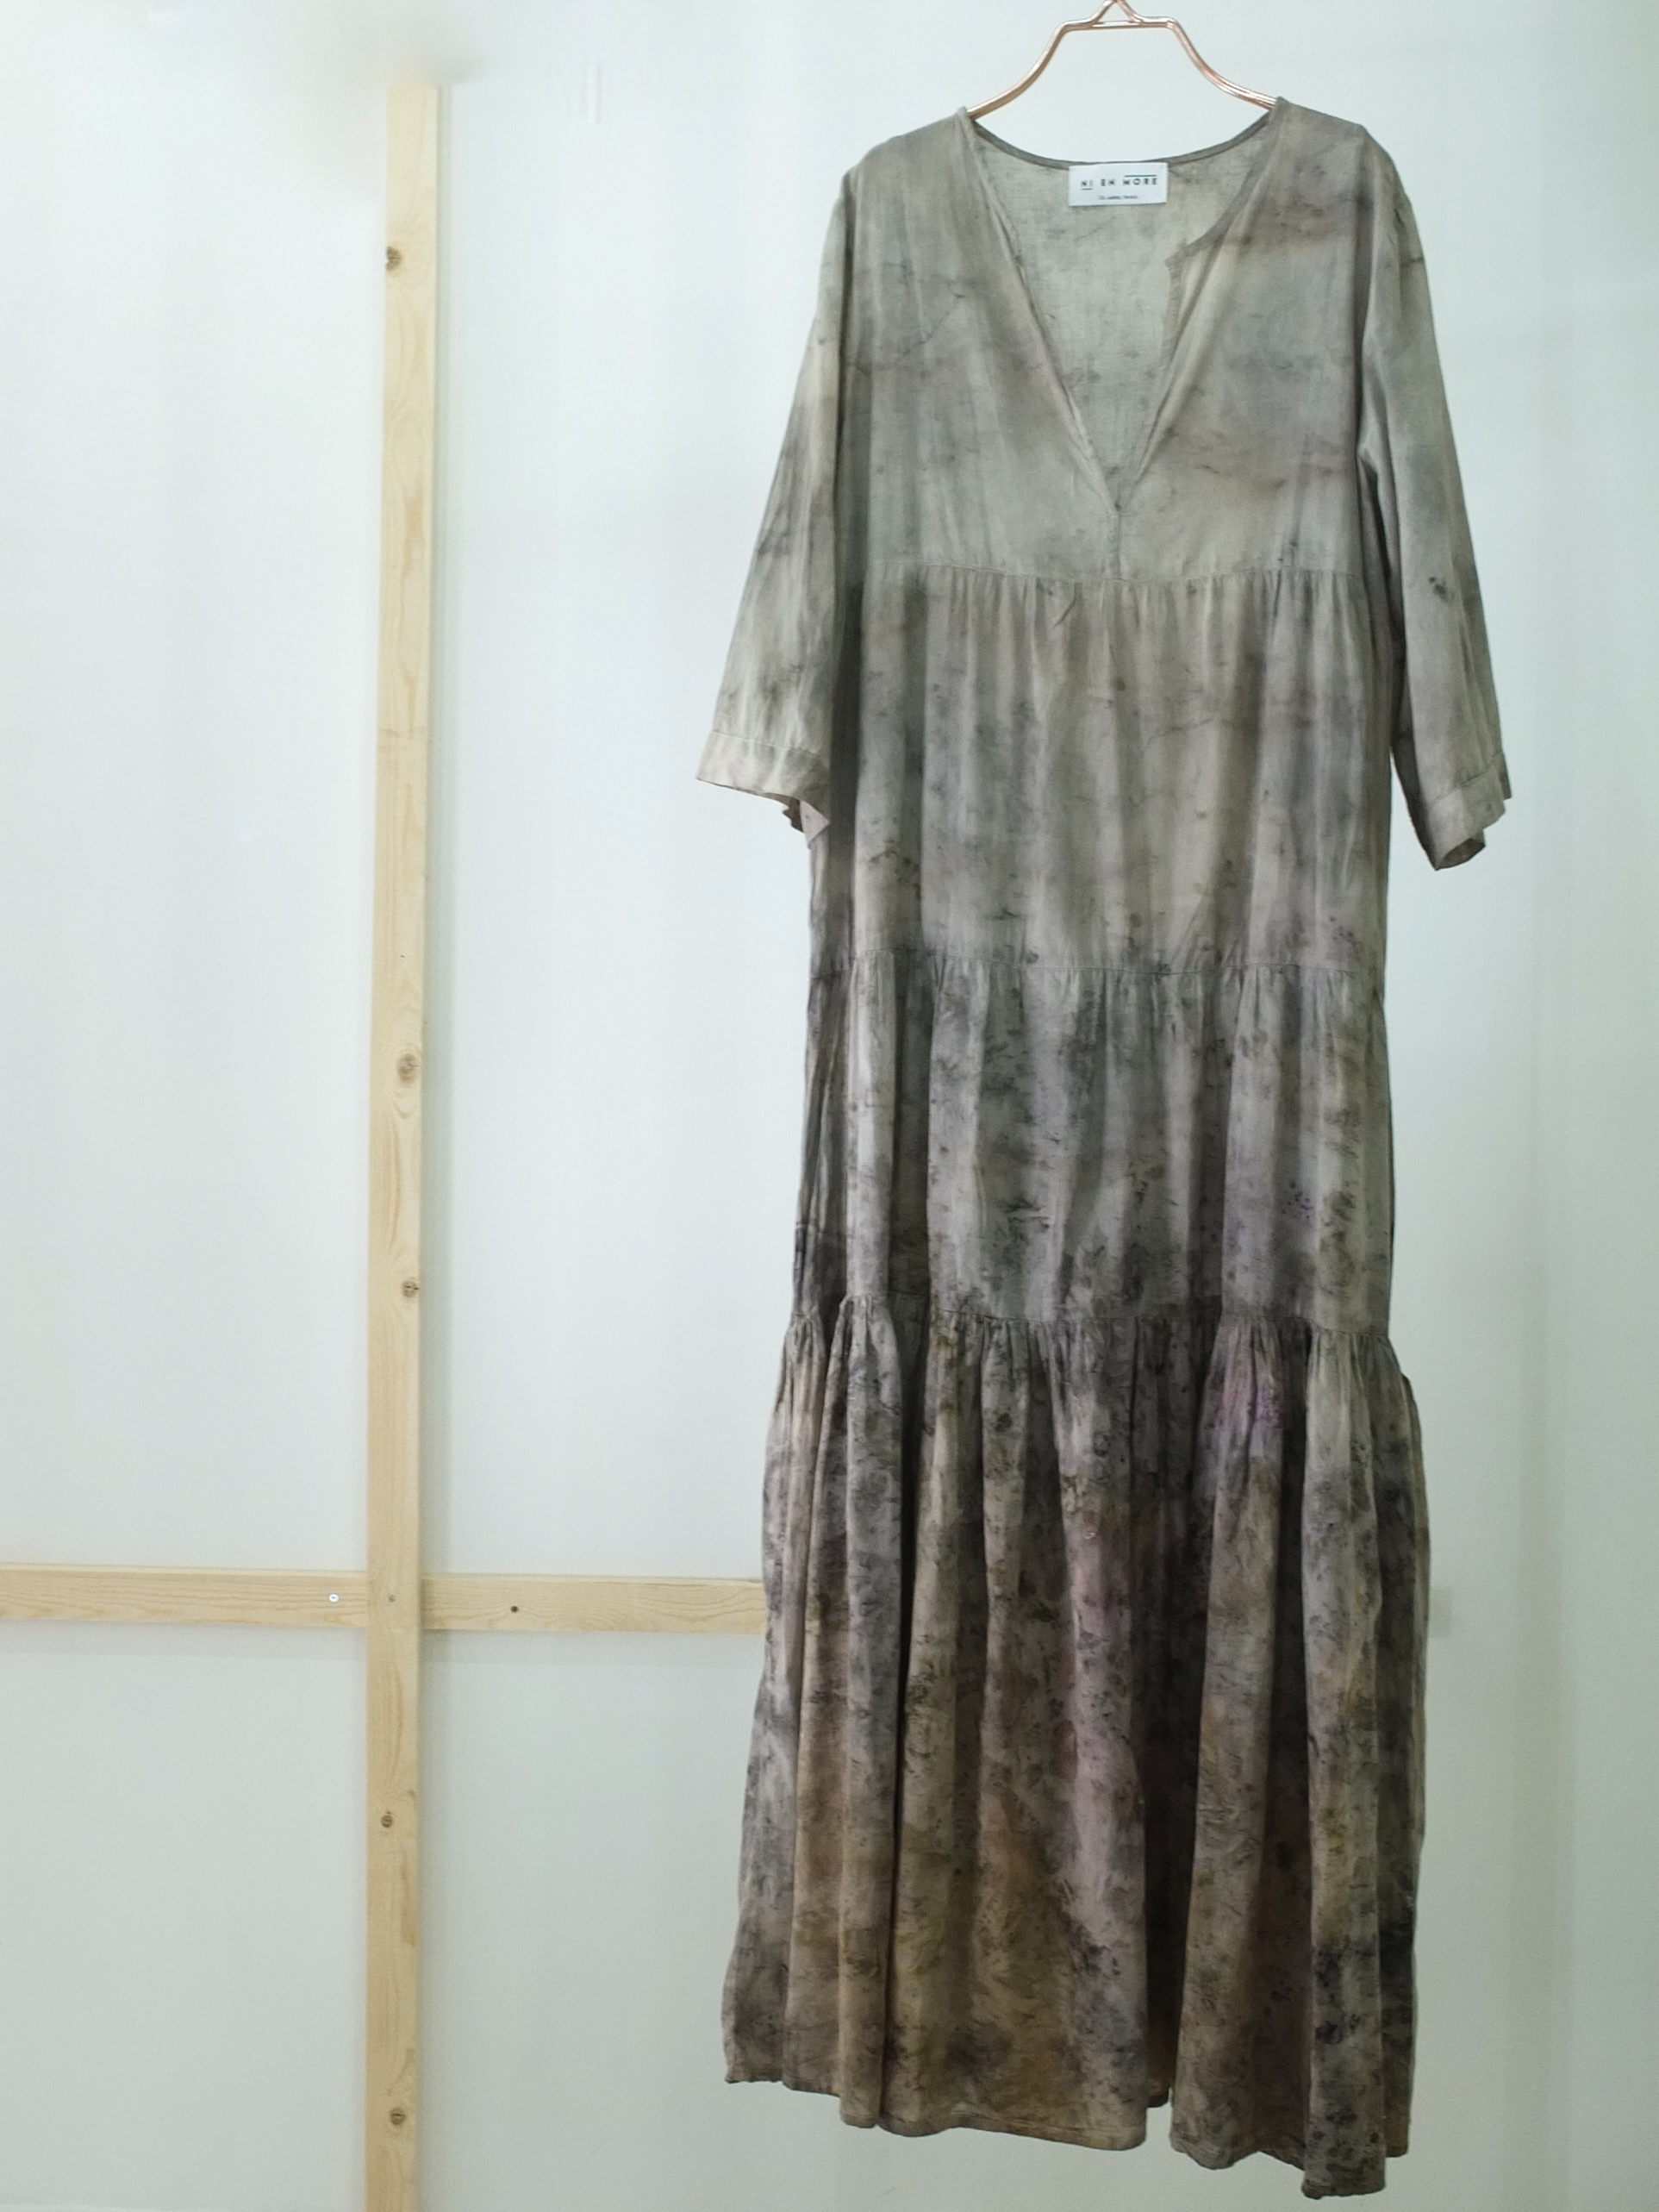 COTTON DRESS · No. 9 OF 60 ·  SIZE LARGE